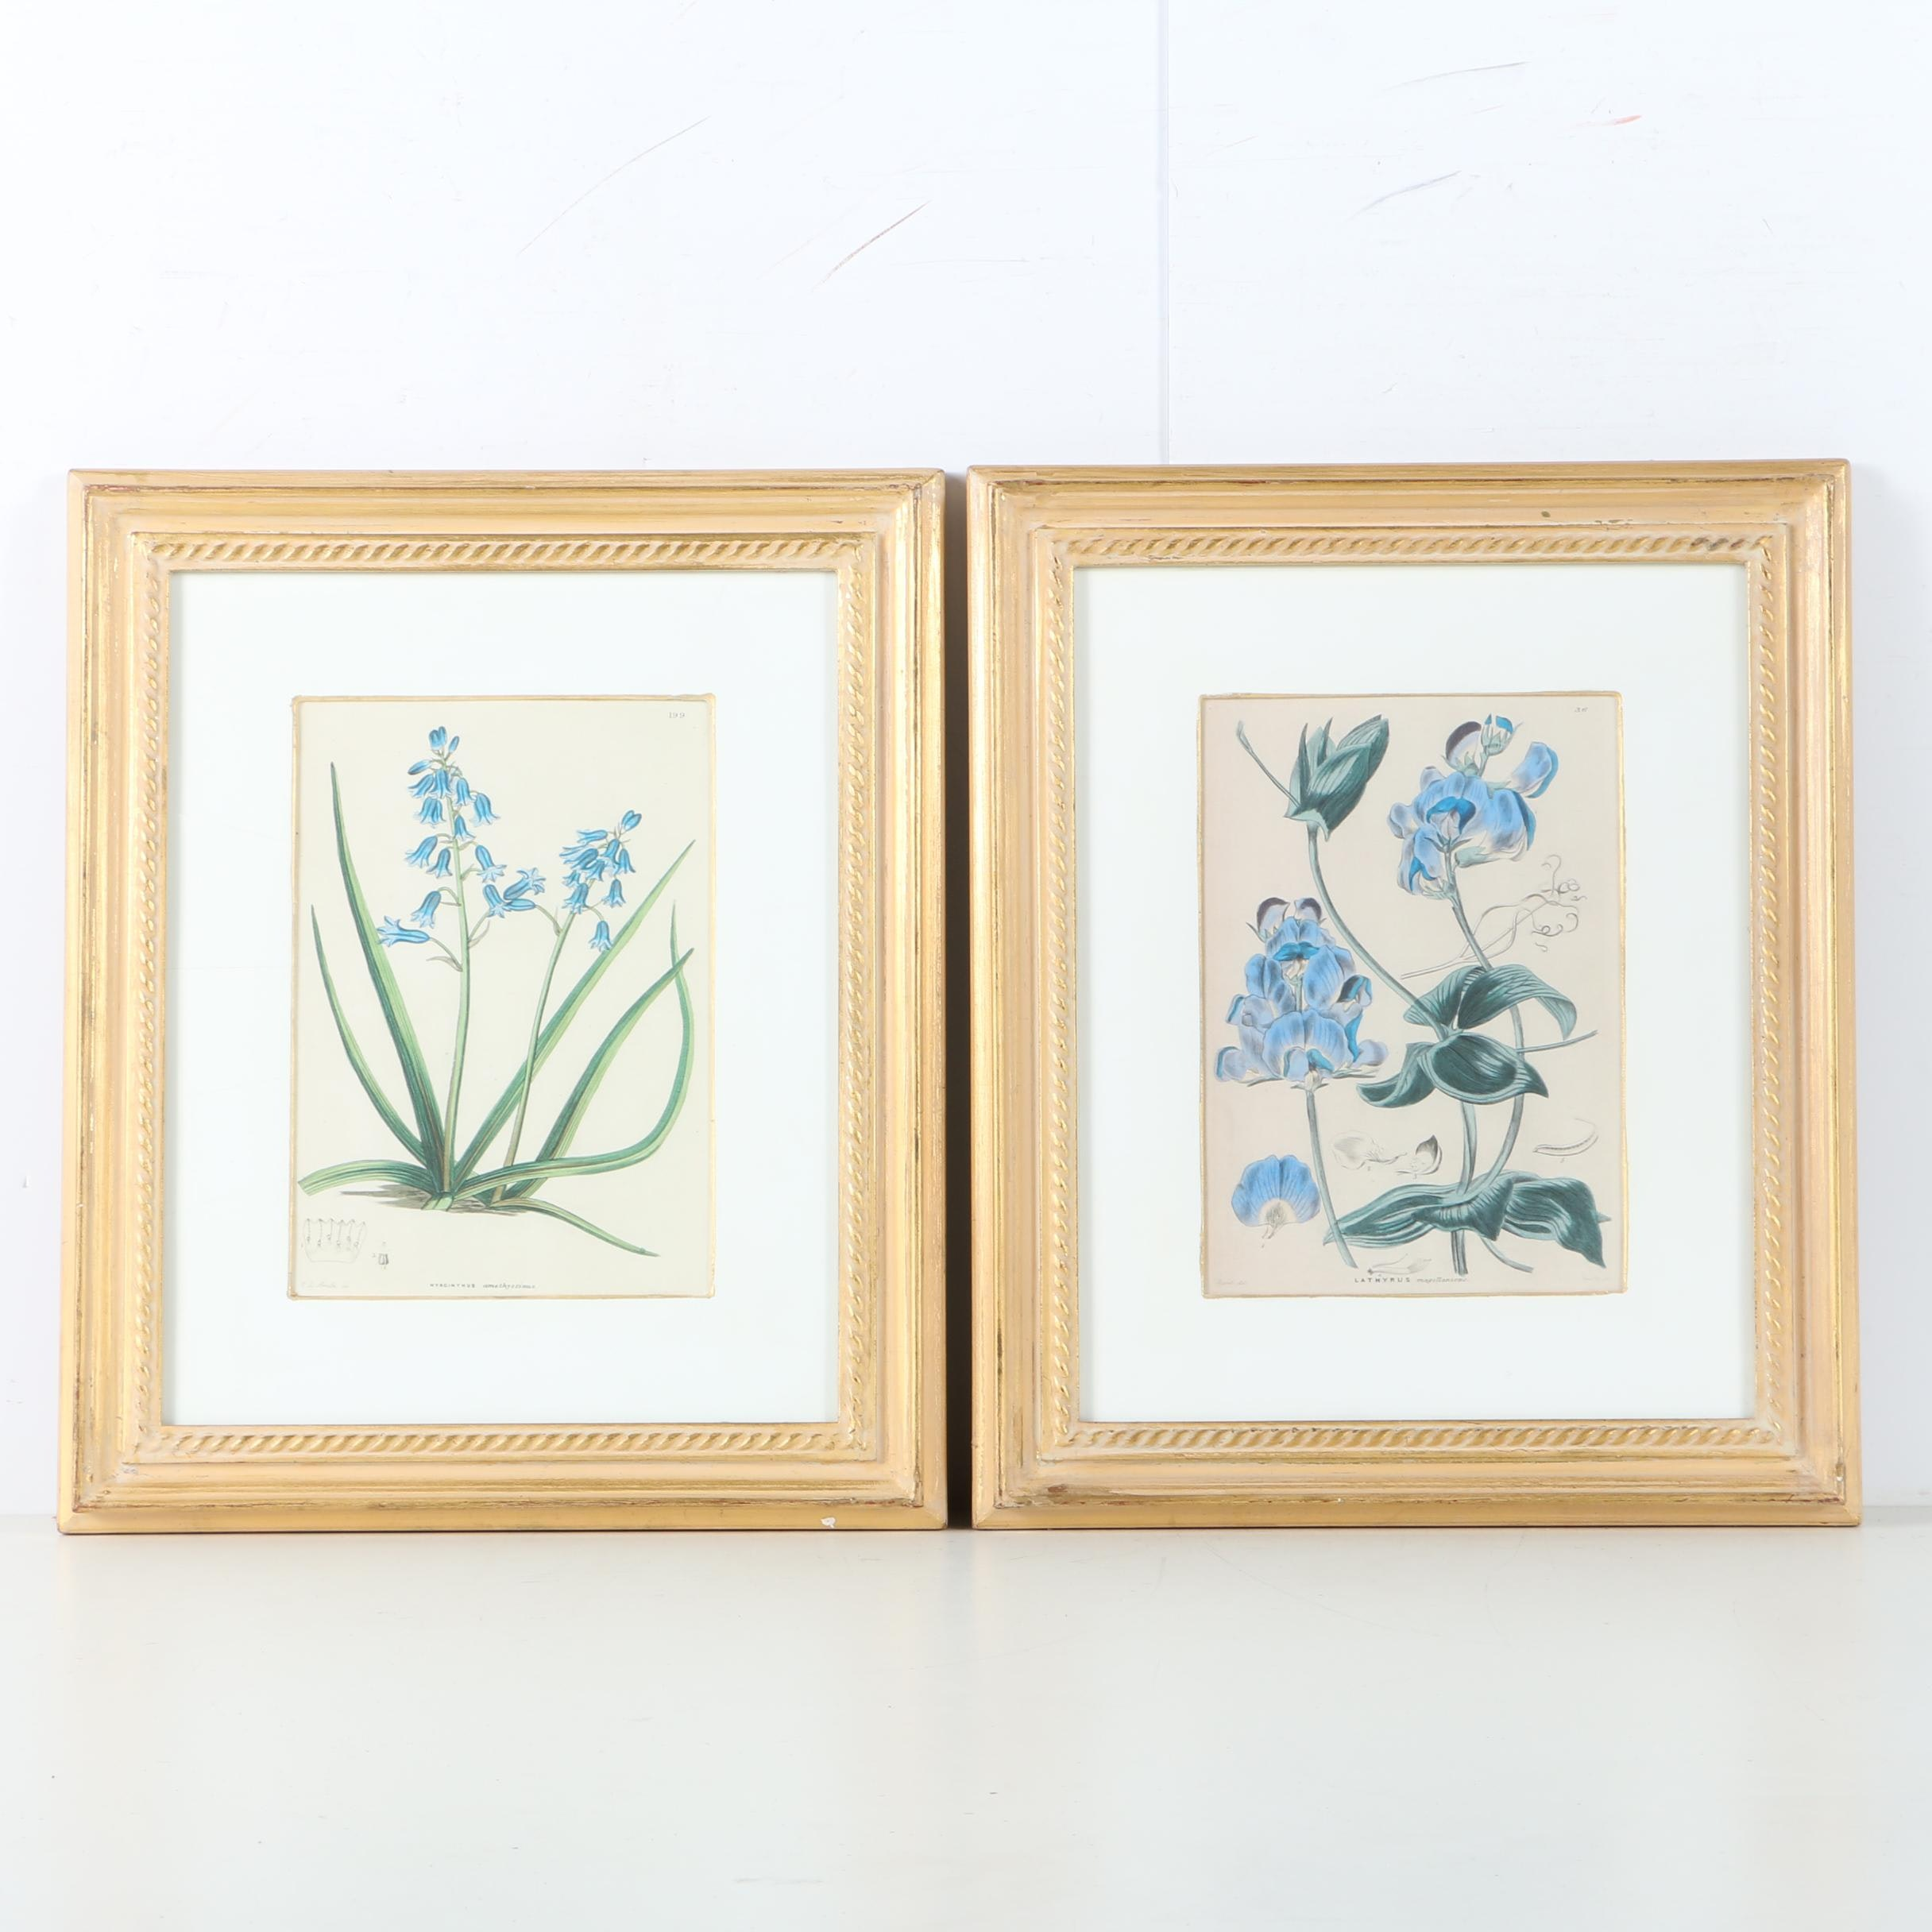 Giclee Prints on Paper After Botanical Illustrations